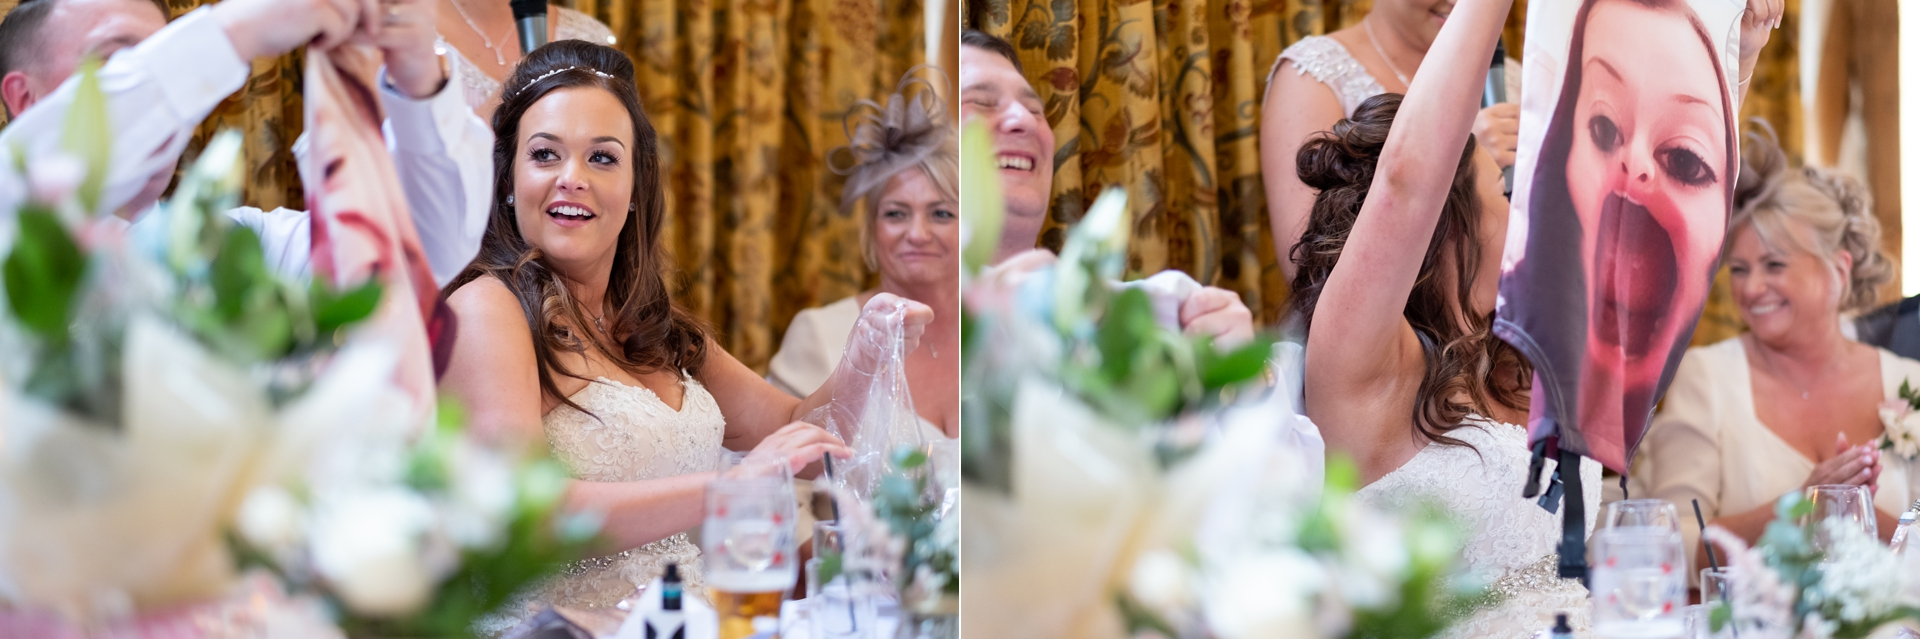 wedding the plough endon cheshire photographer photo 30.jpg